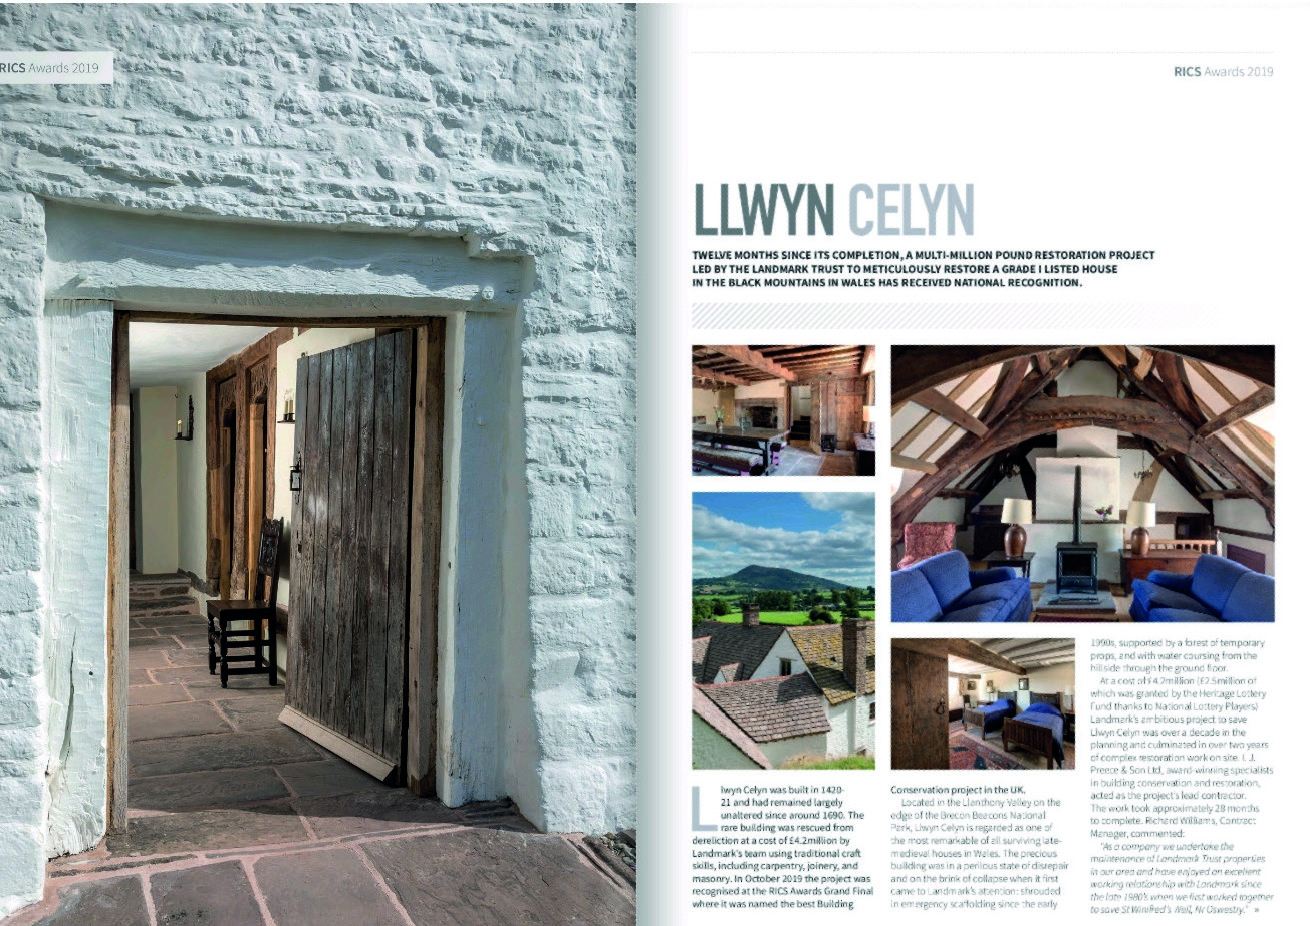 This is an image of award winning Llwyn Celyn